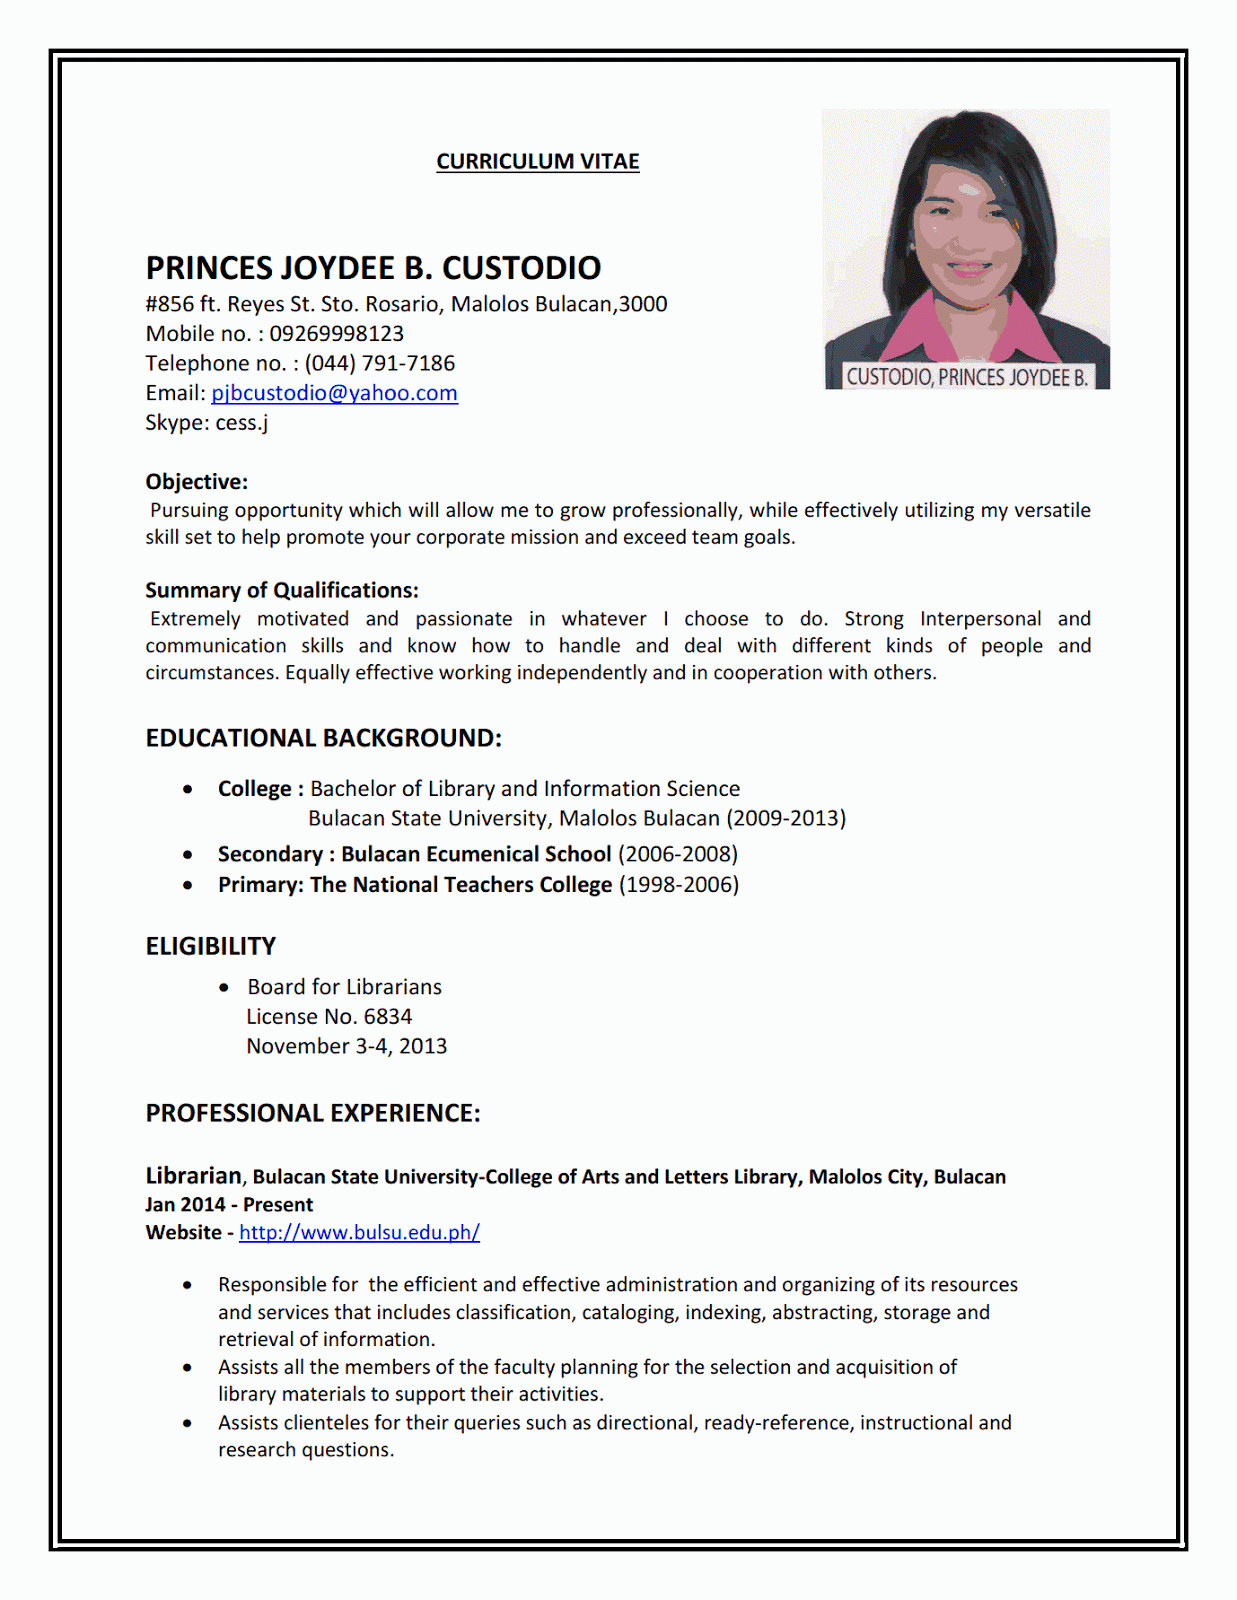 Applying for First Job Resume Samples Resume Sample First Job with Images